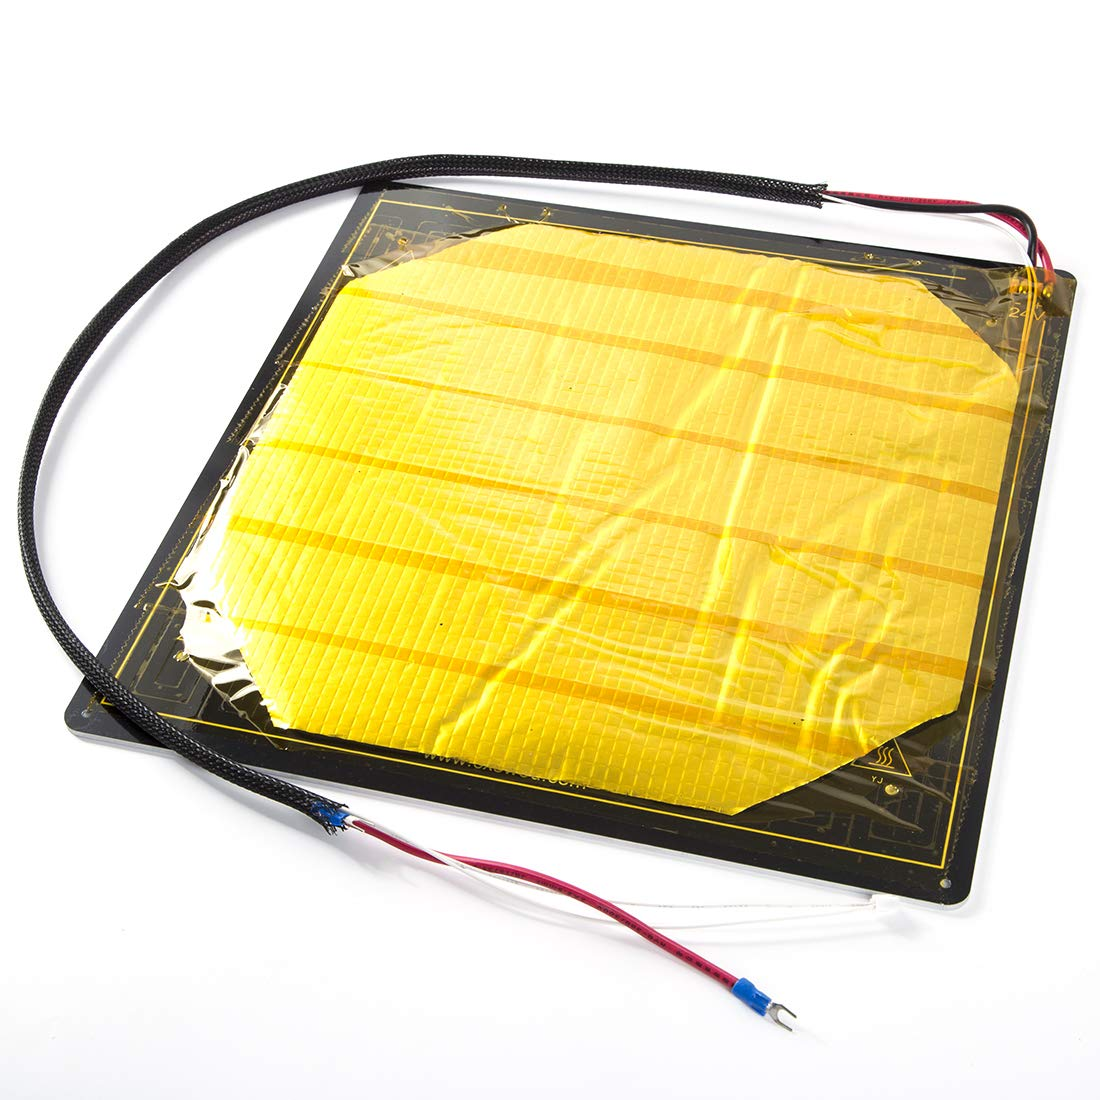 Creality CR-10S Pro Aluminum Heated Bed Replacement Kit 24V 220W